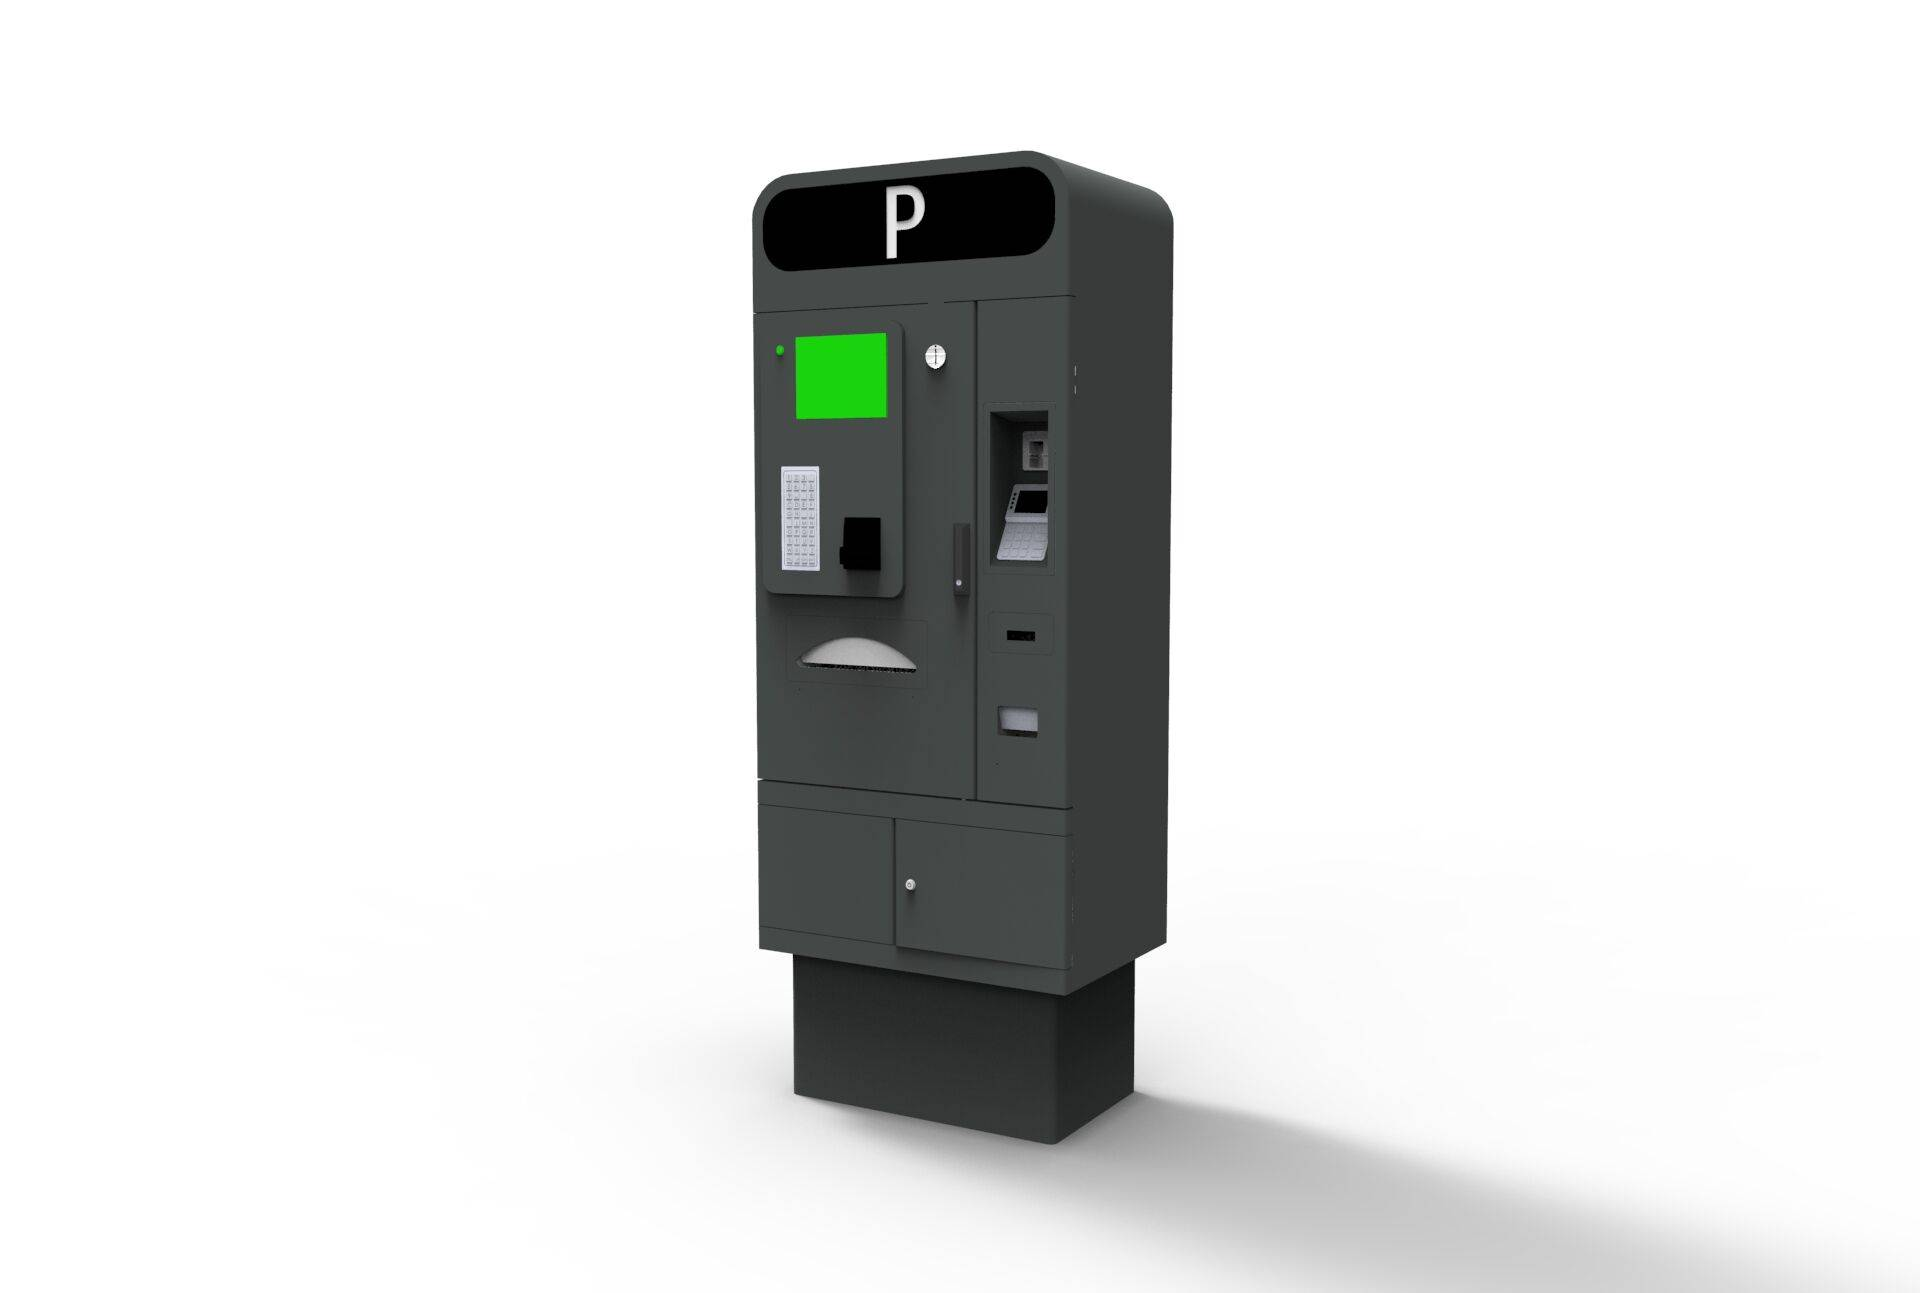 Automatic Parking payment kiosk full function pay on foot parking system